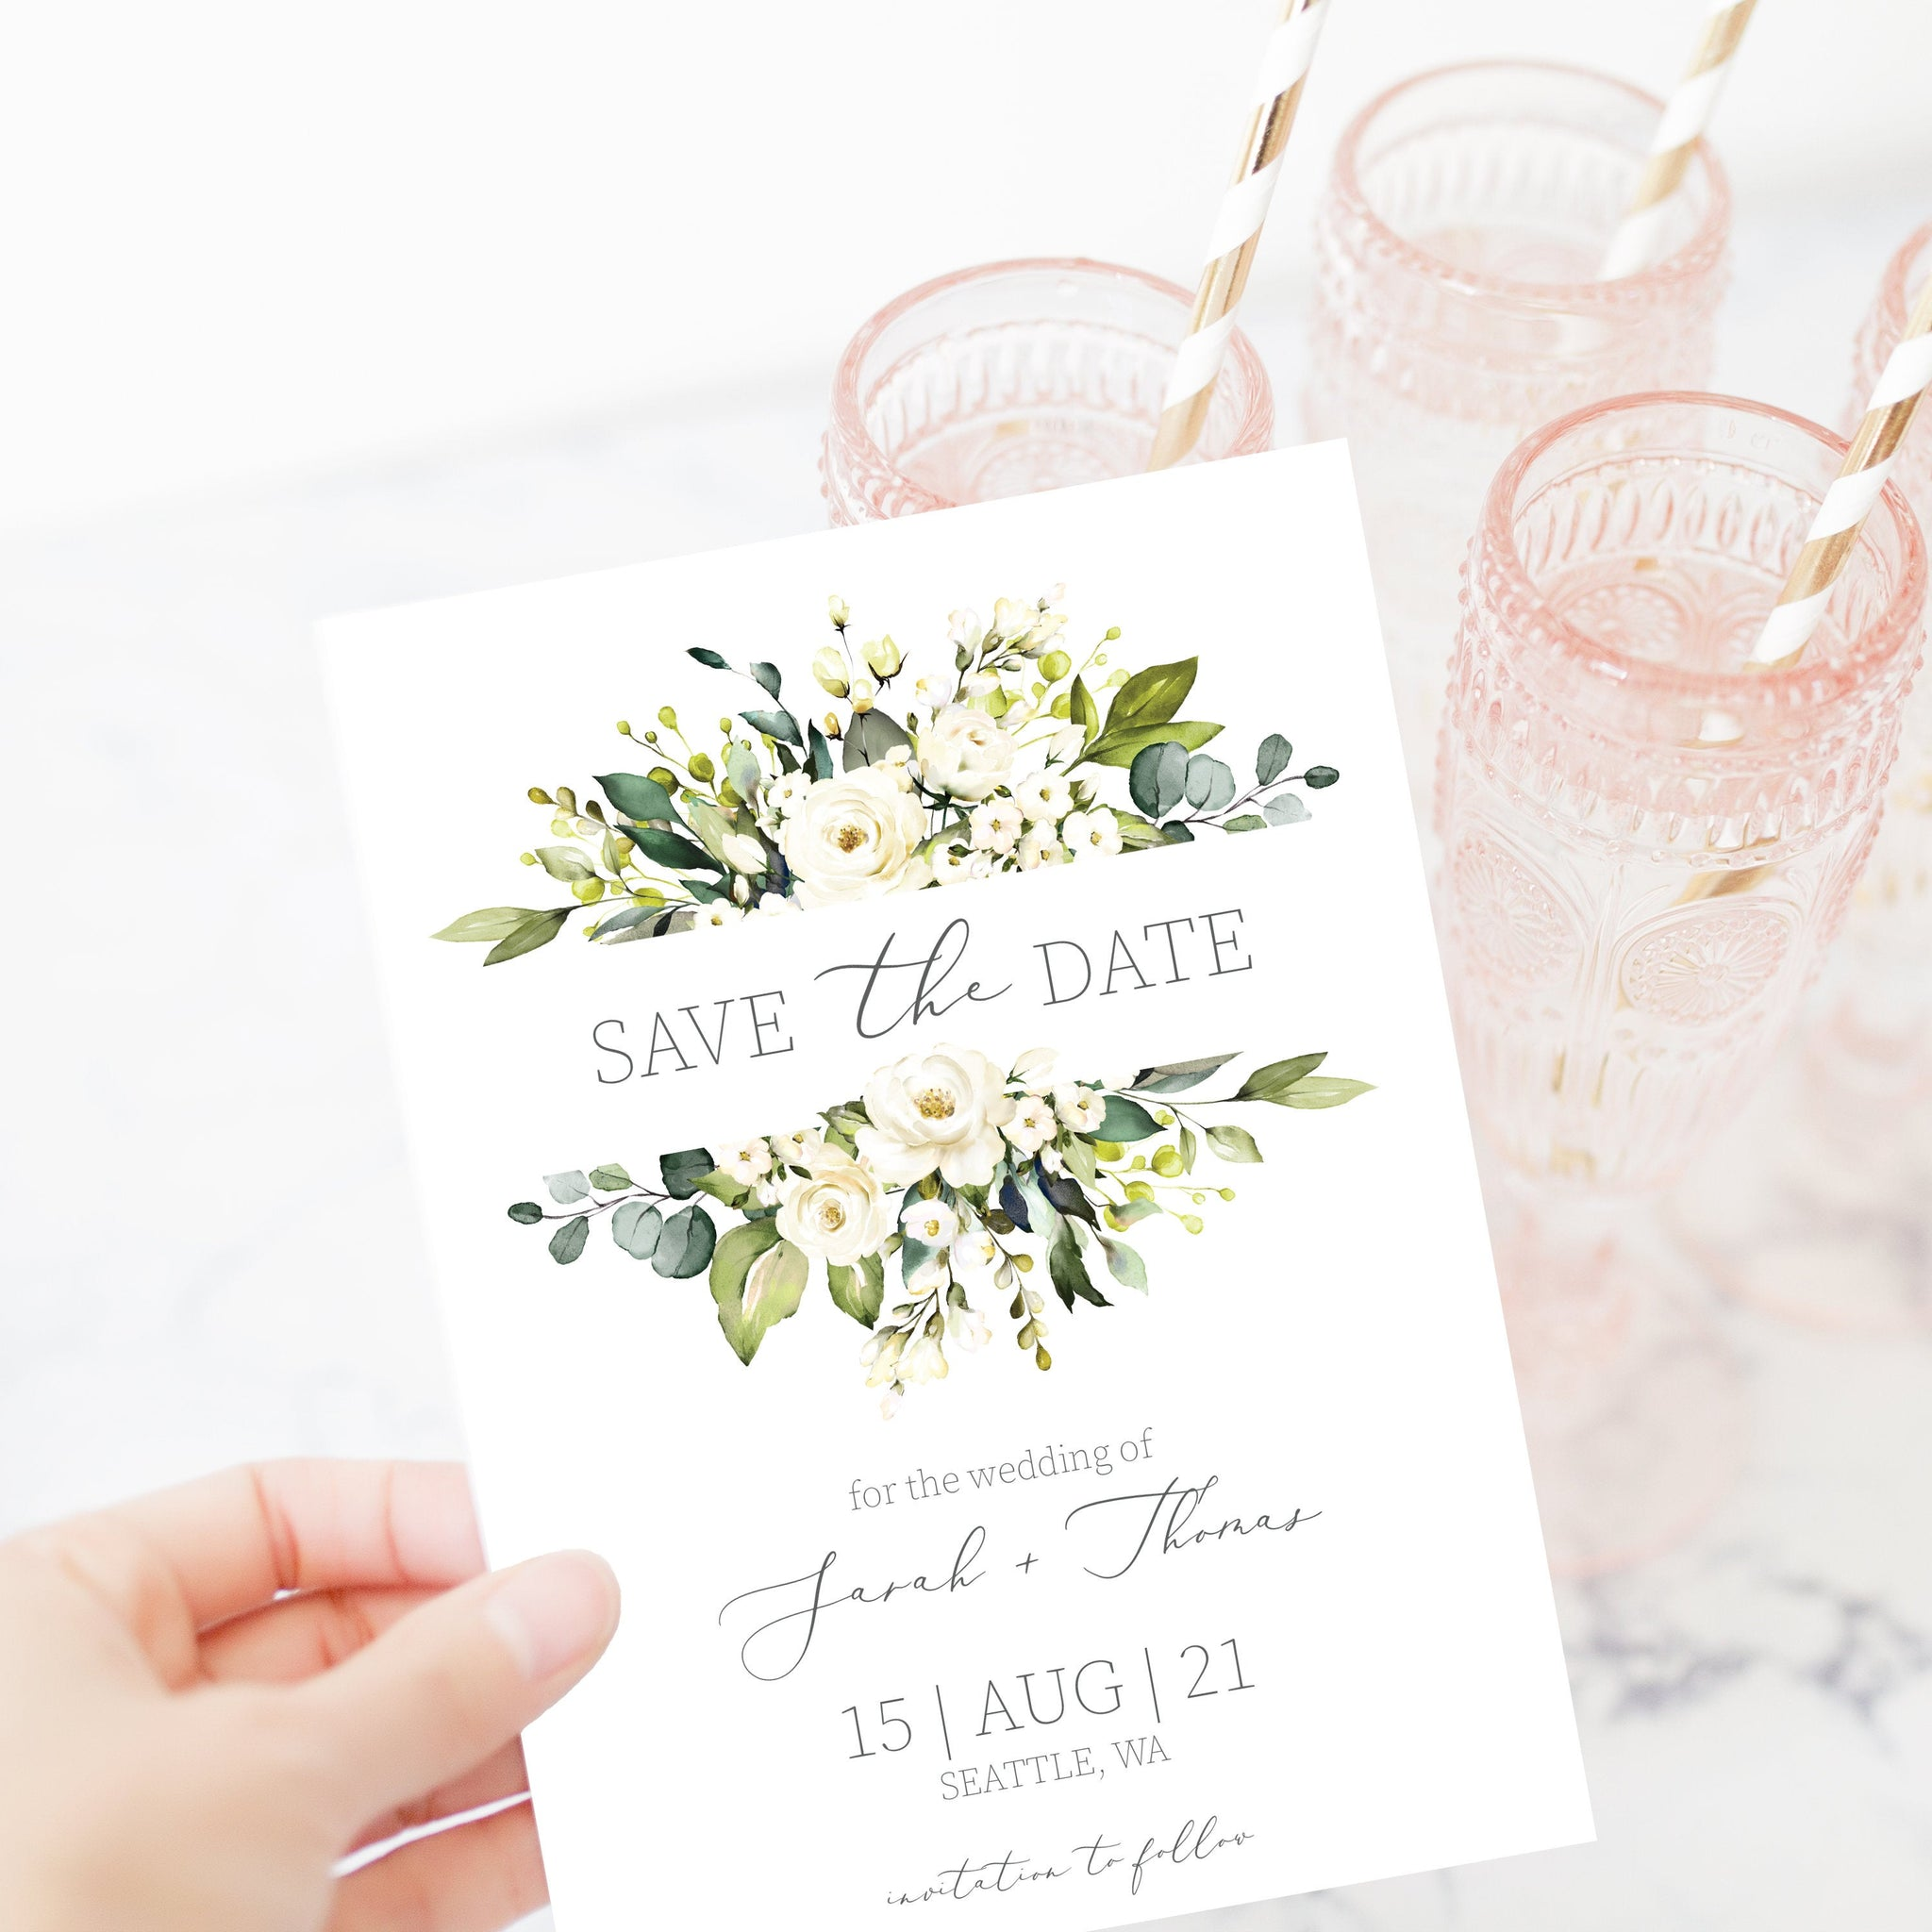 Greenery Save The Date Card, Editable Wedding Engagement Announcement Ideas, White Floral Save The Date Template, 5x7 - WRG100 - @PlumPolkaDot